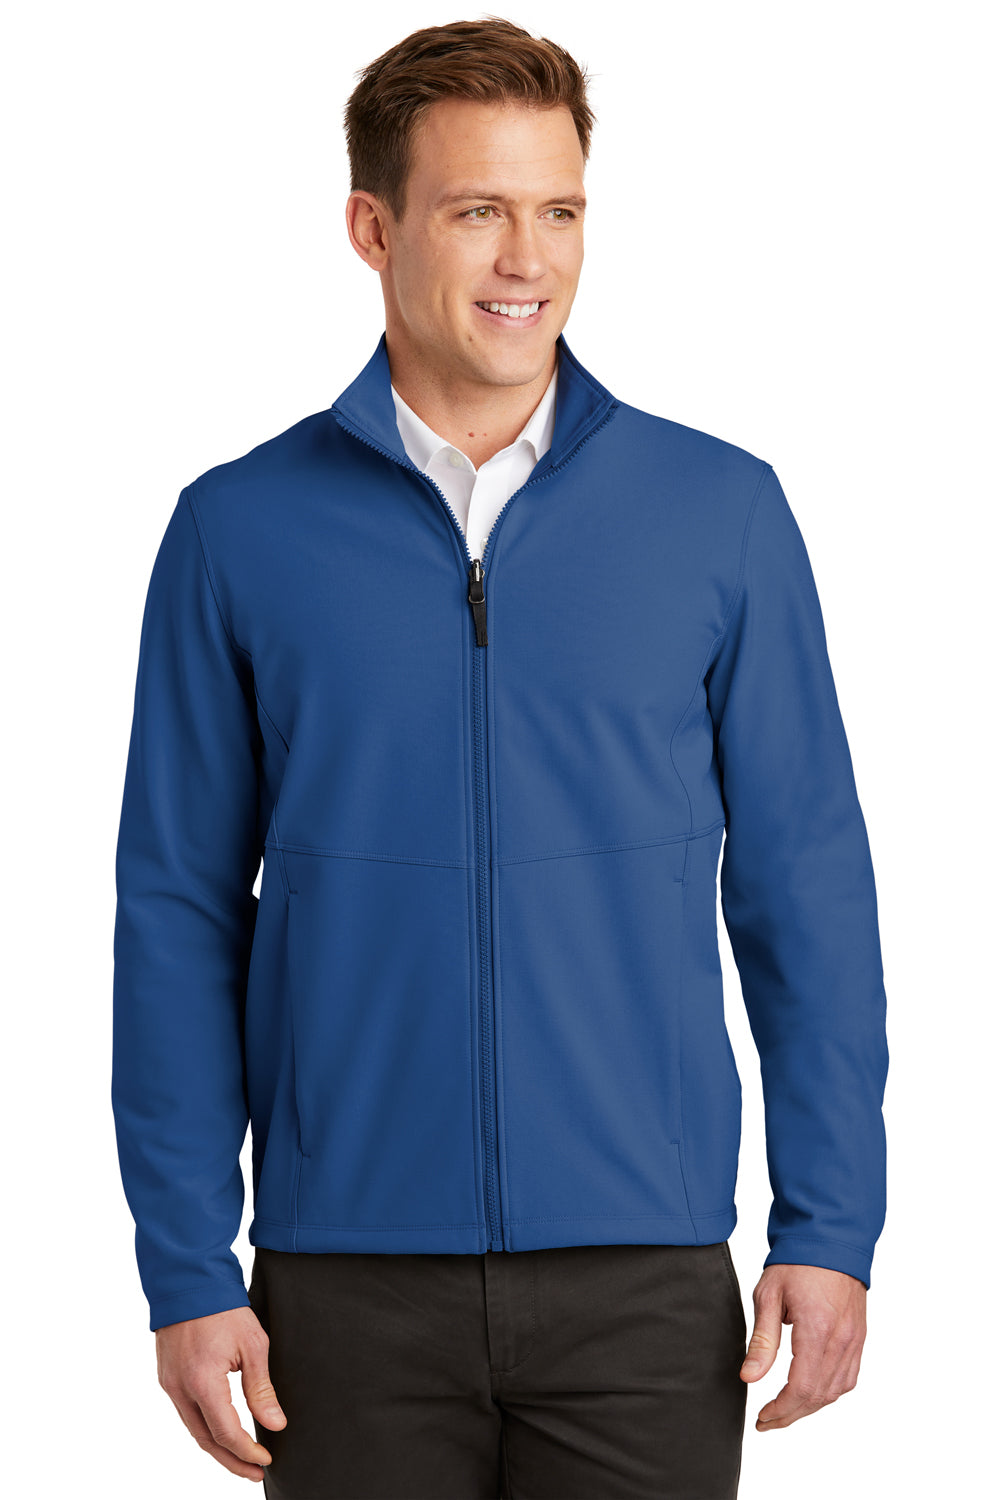 Port Authority J901 Mens Collective Wind & Water Resistant Full Zip Jacket Night Sky Blue Front